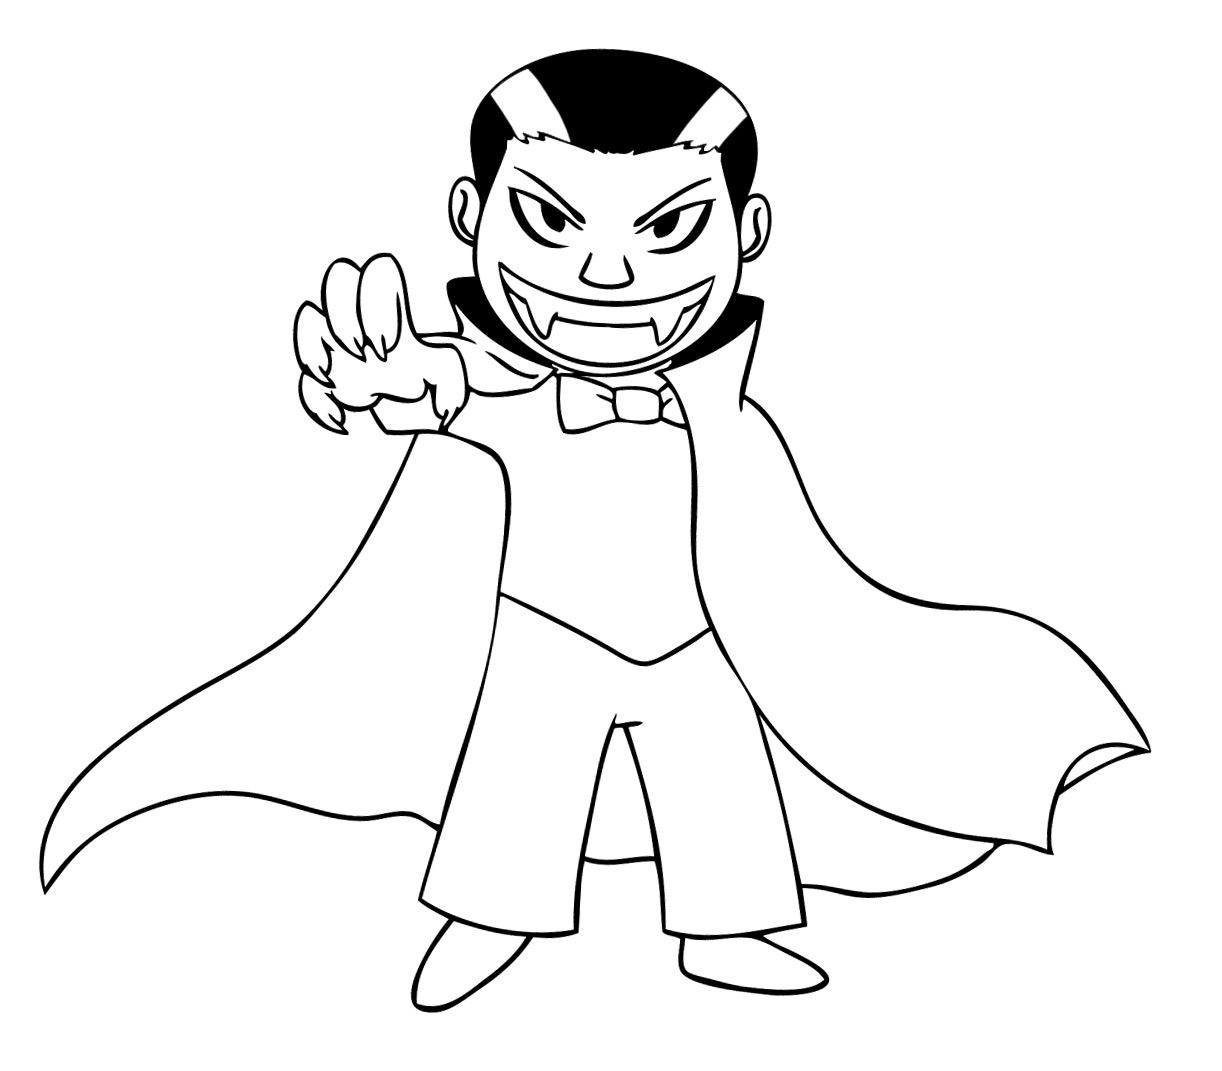 coloring pages vampire printable vampire coloring pages for kids cool2bkids vampire pages coloring